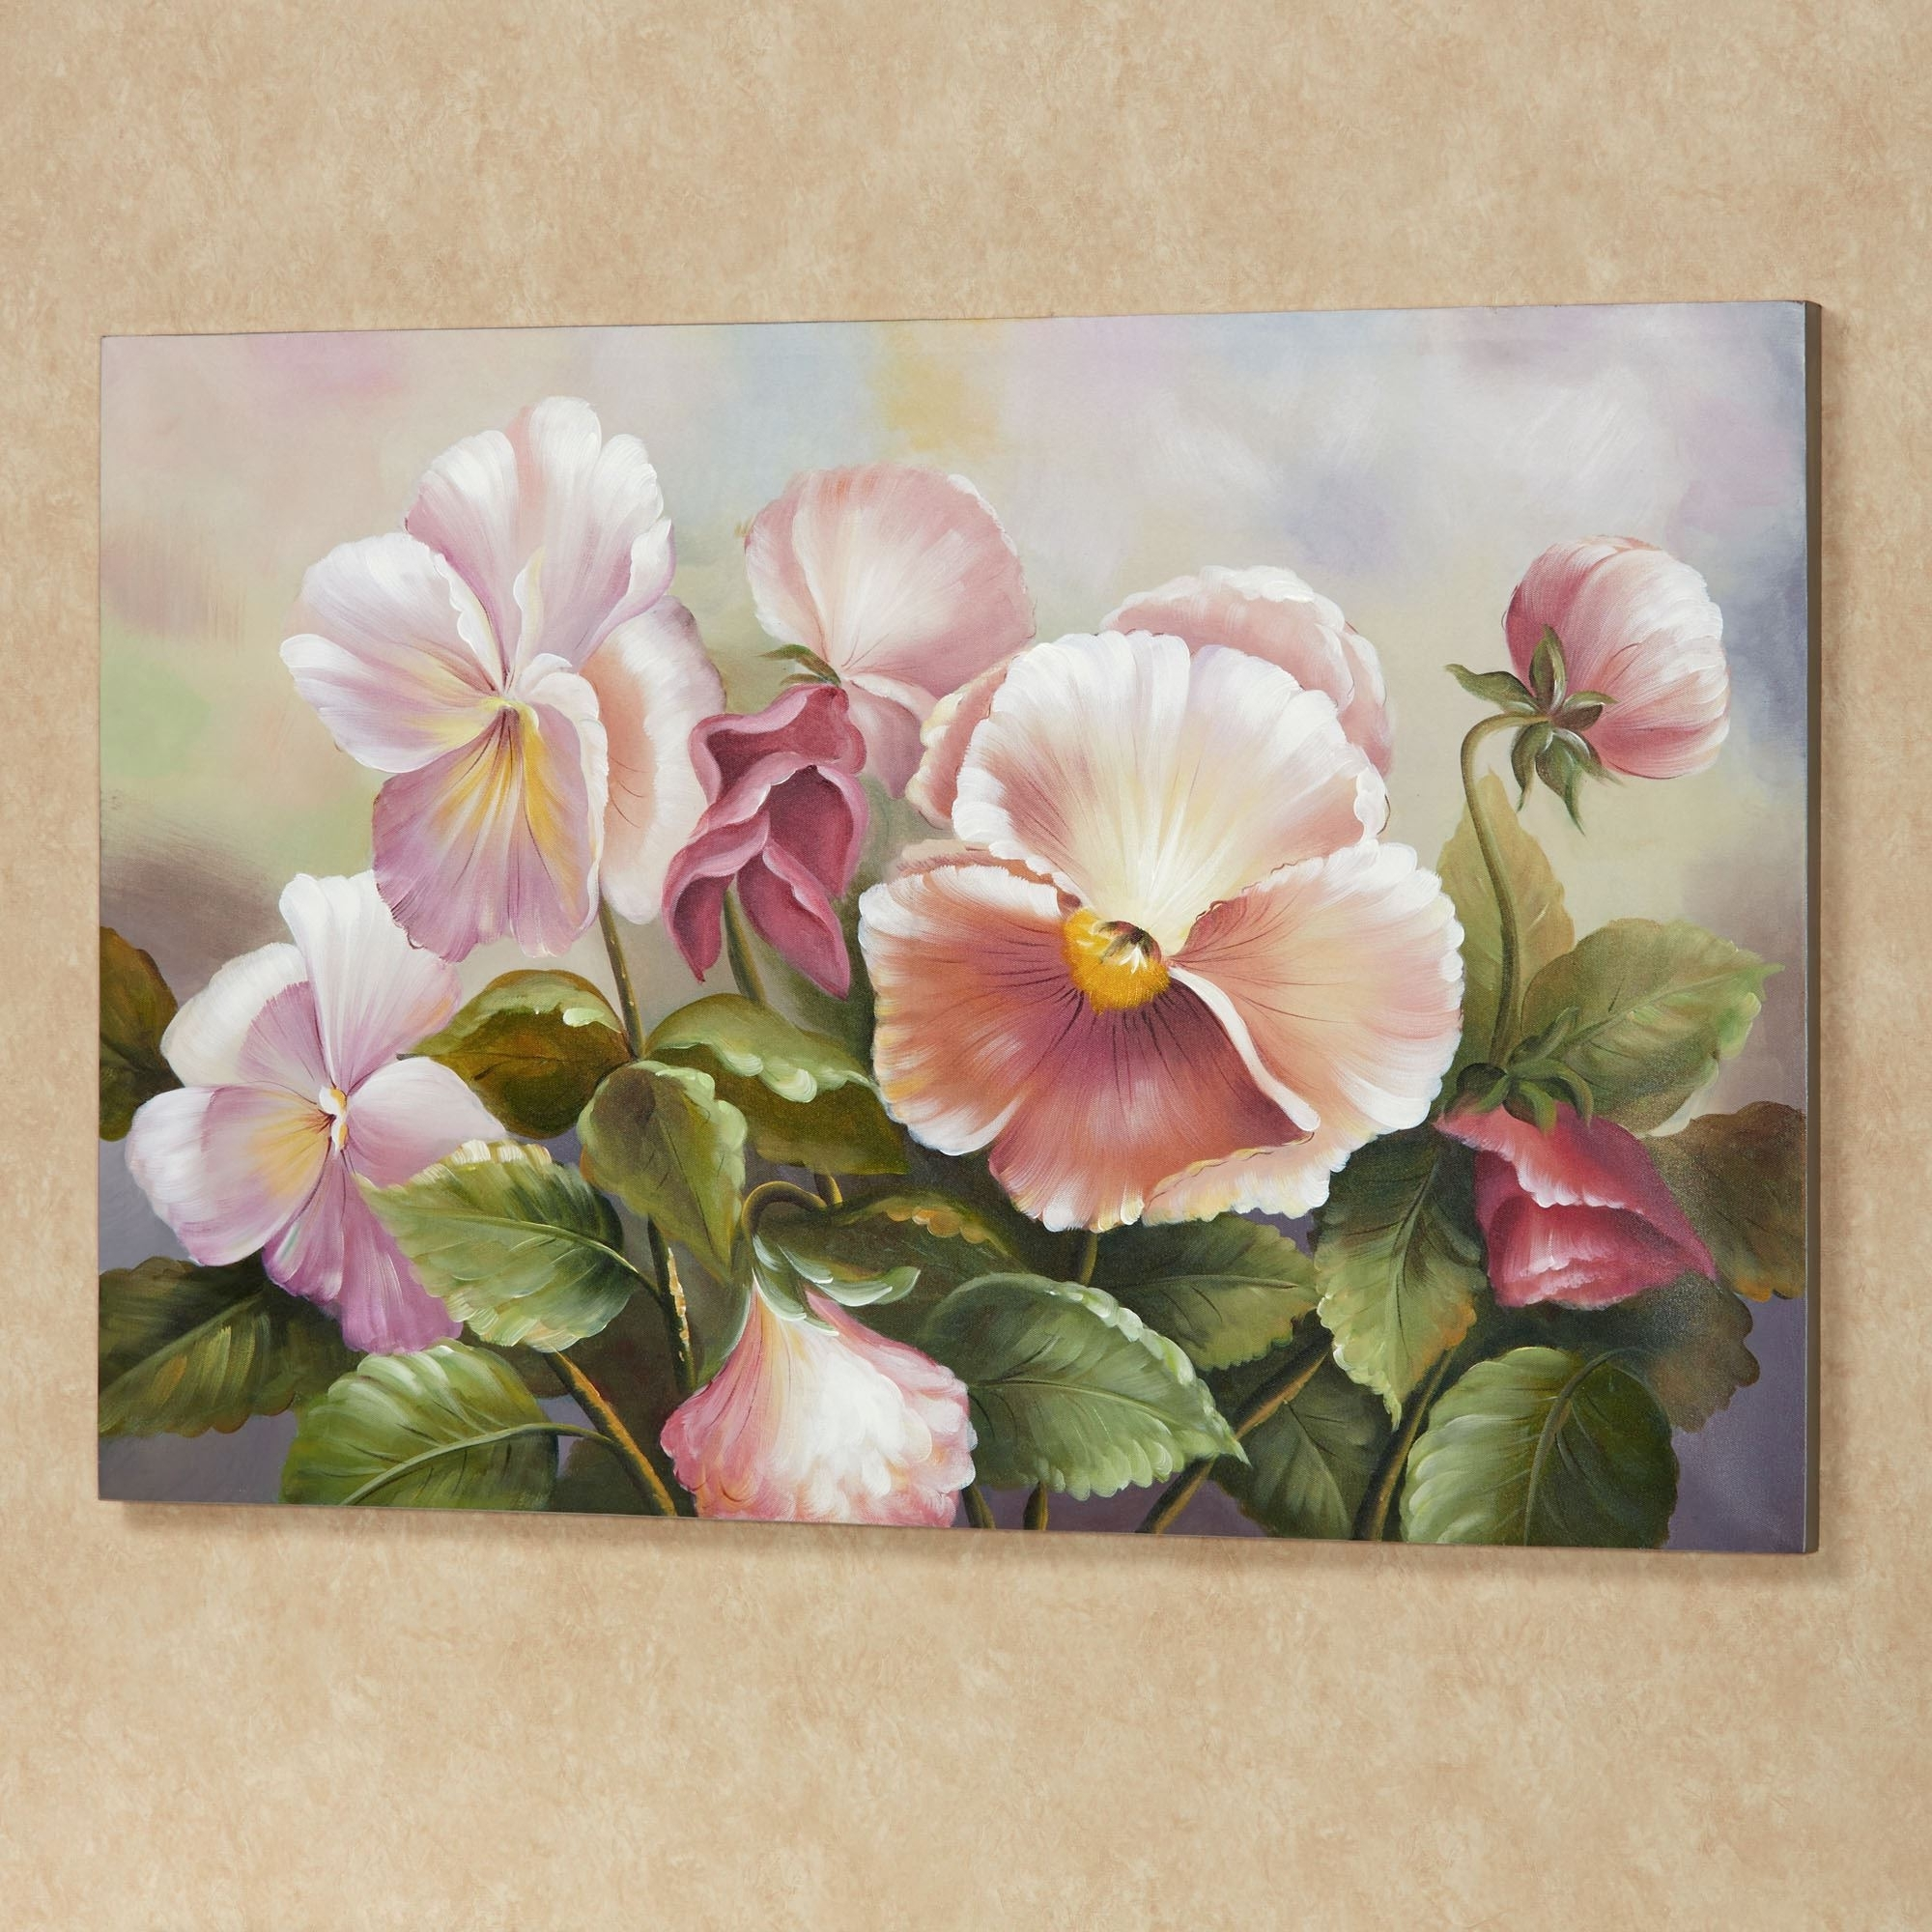 Preferred Wall Art: Awesome Floral Canvas Art Floral Wall Decor Metal, Large For Pink Flower Wall Art (View 12 of 15)